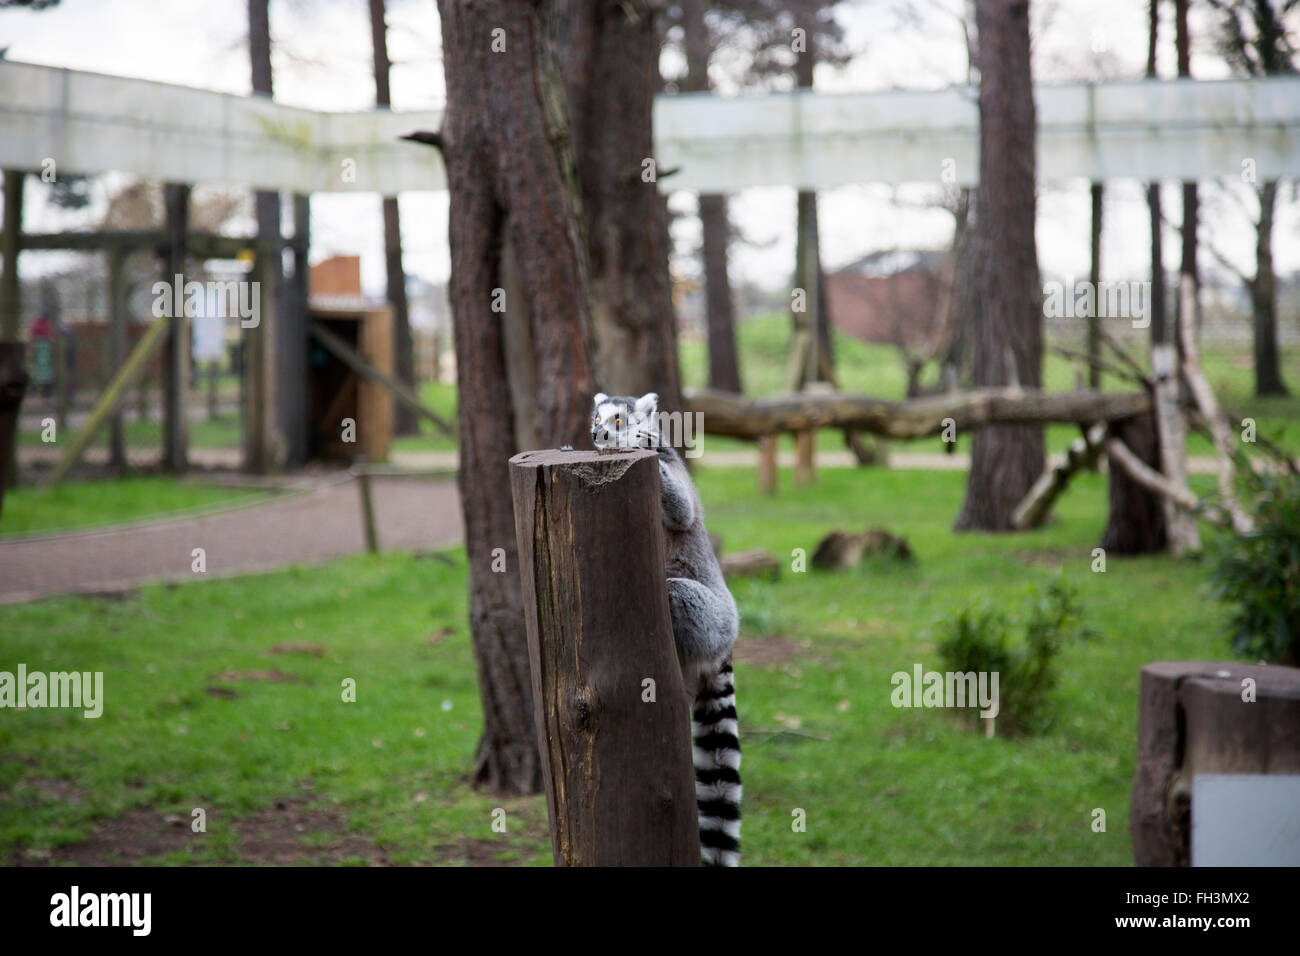 A lemur (Lemuriformes) climbs onto a tree stump at the Yorkshire Wildlife Park, Finningley, Doncaster, South Yorkshire, - Stock Image